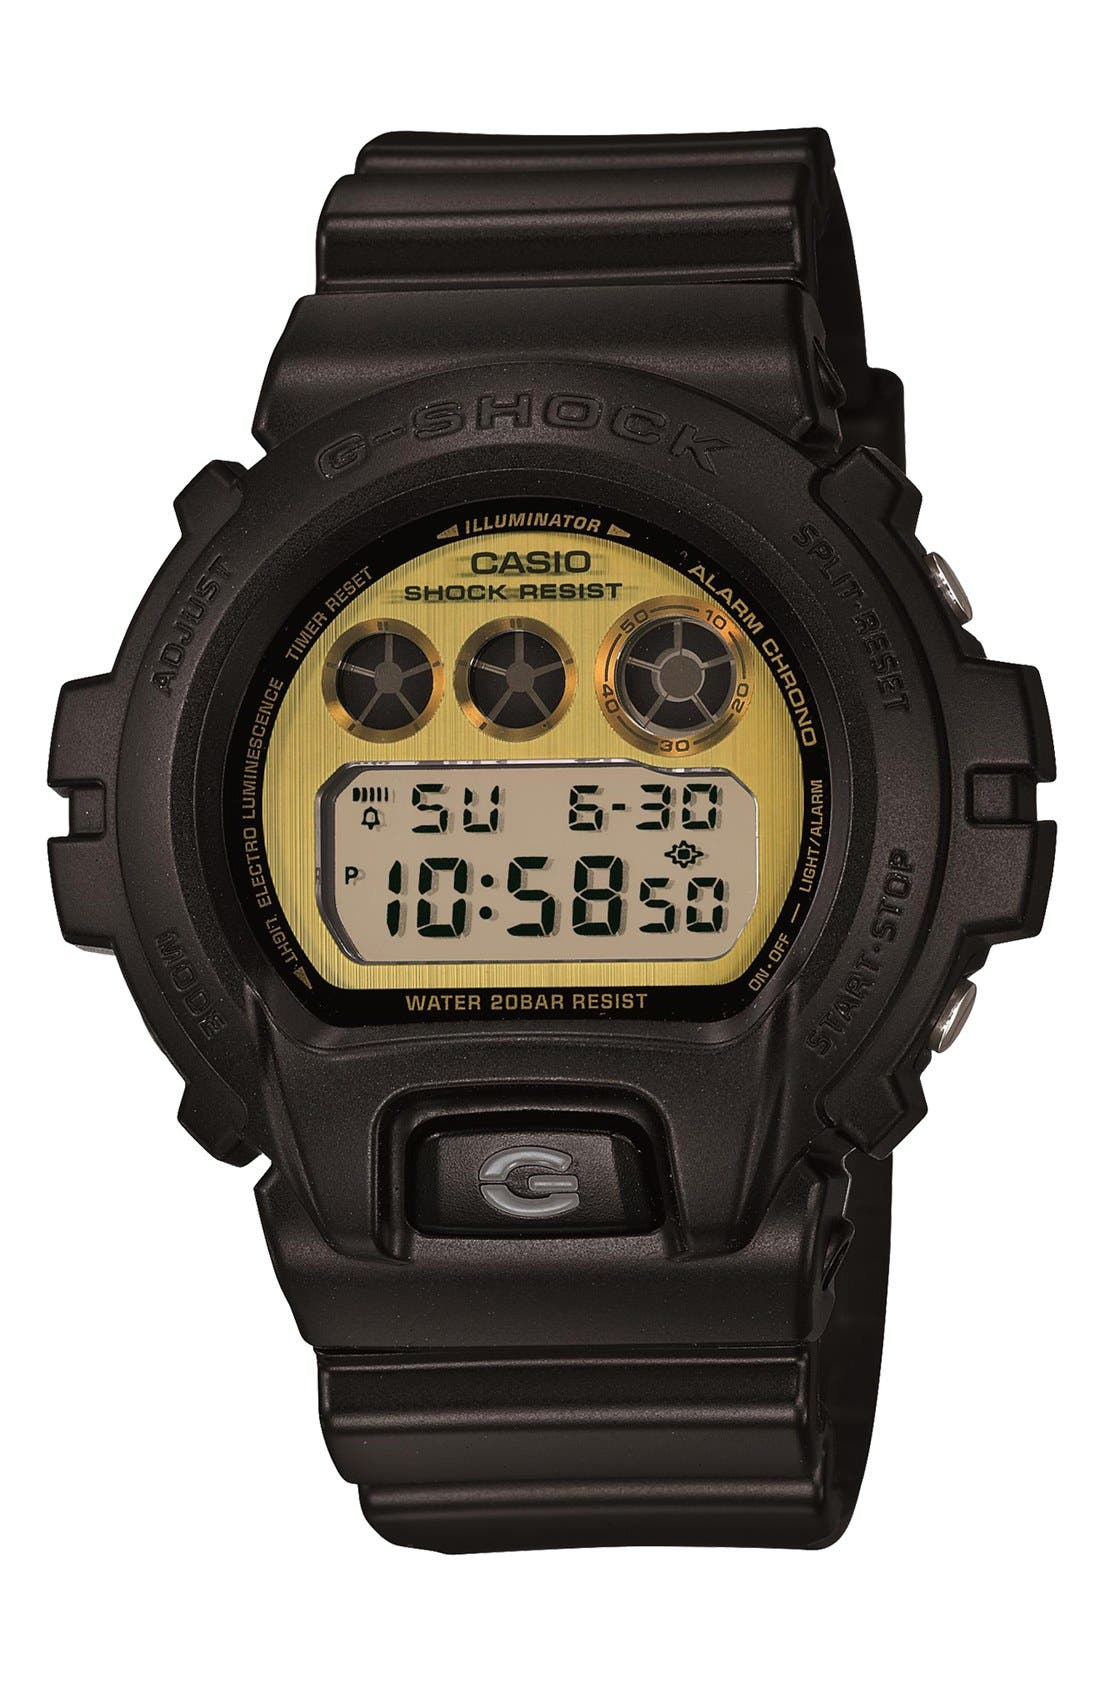 Main Image - G-Shock 'Polarized' Digital Watch, 53mm x 50mm